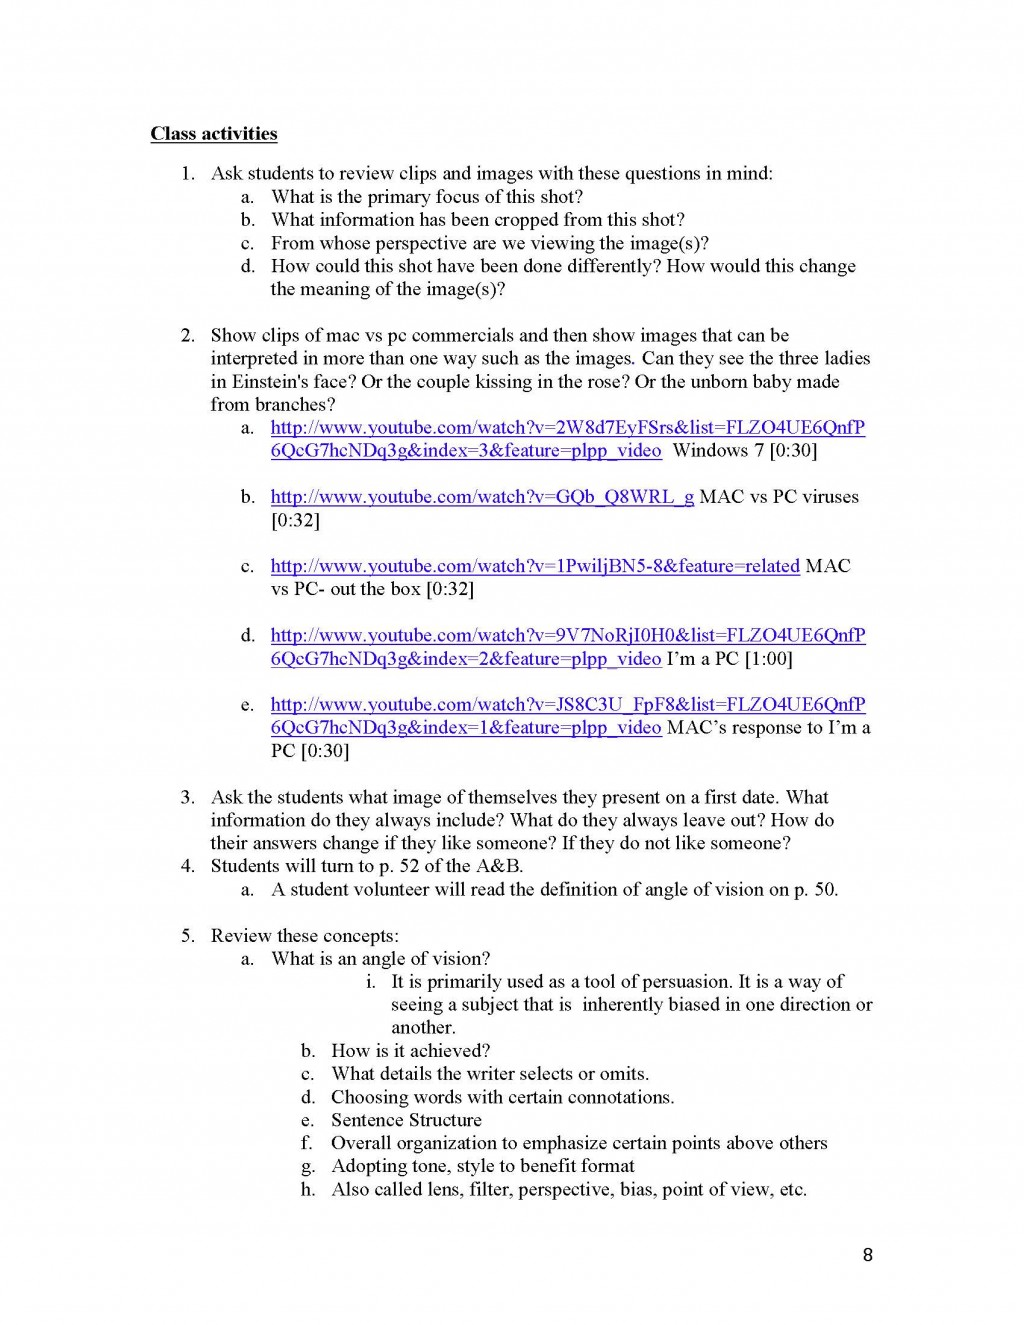 006 Essay Example Define Narrative Unit 1 Literacy Instructor Copy Page 08 Fascinating Definition Of Writing Personal Narrative/descriptive Large